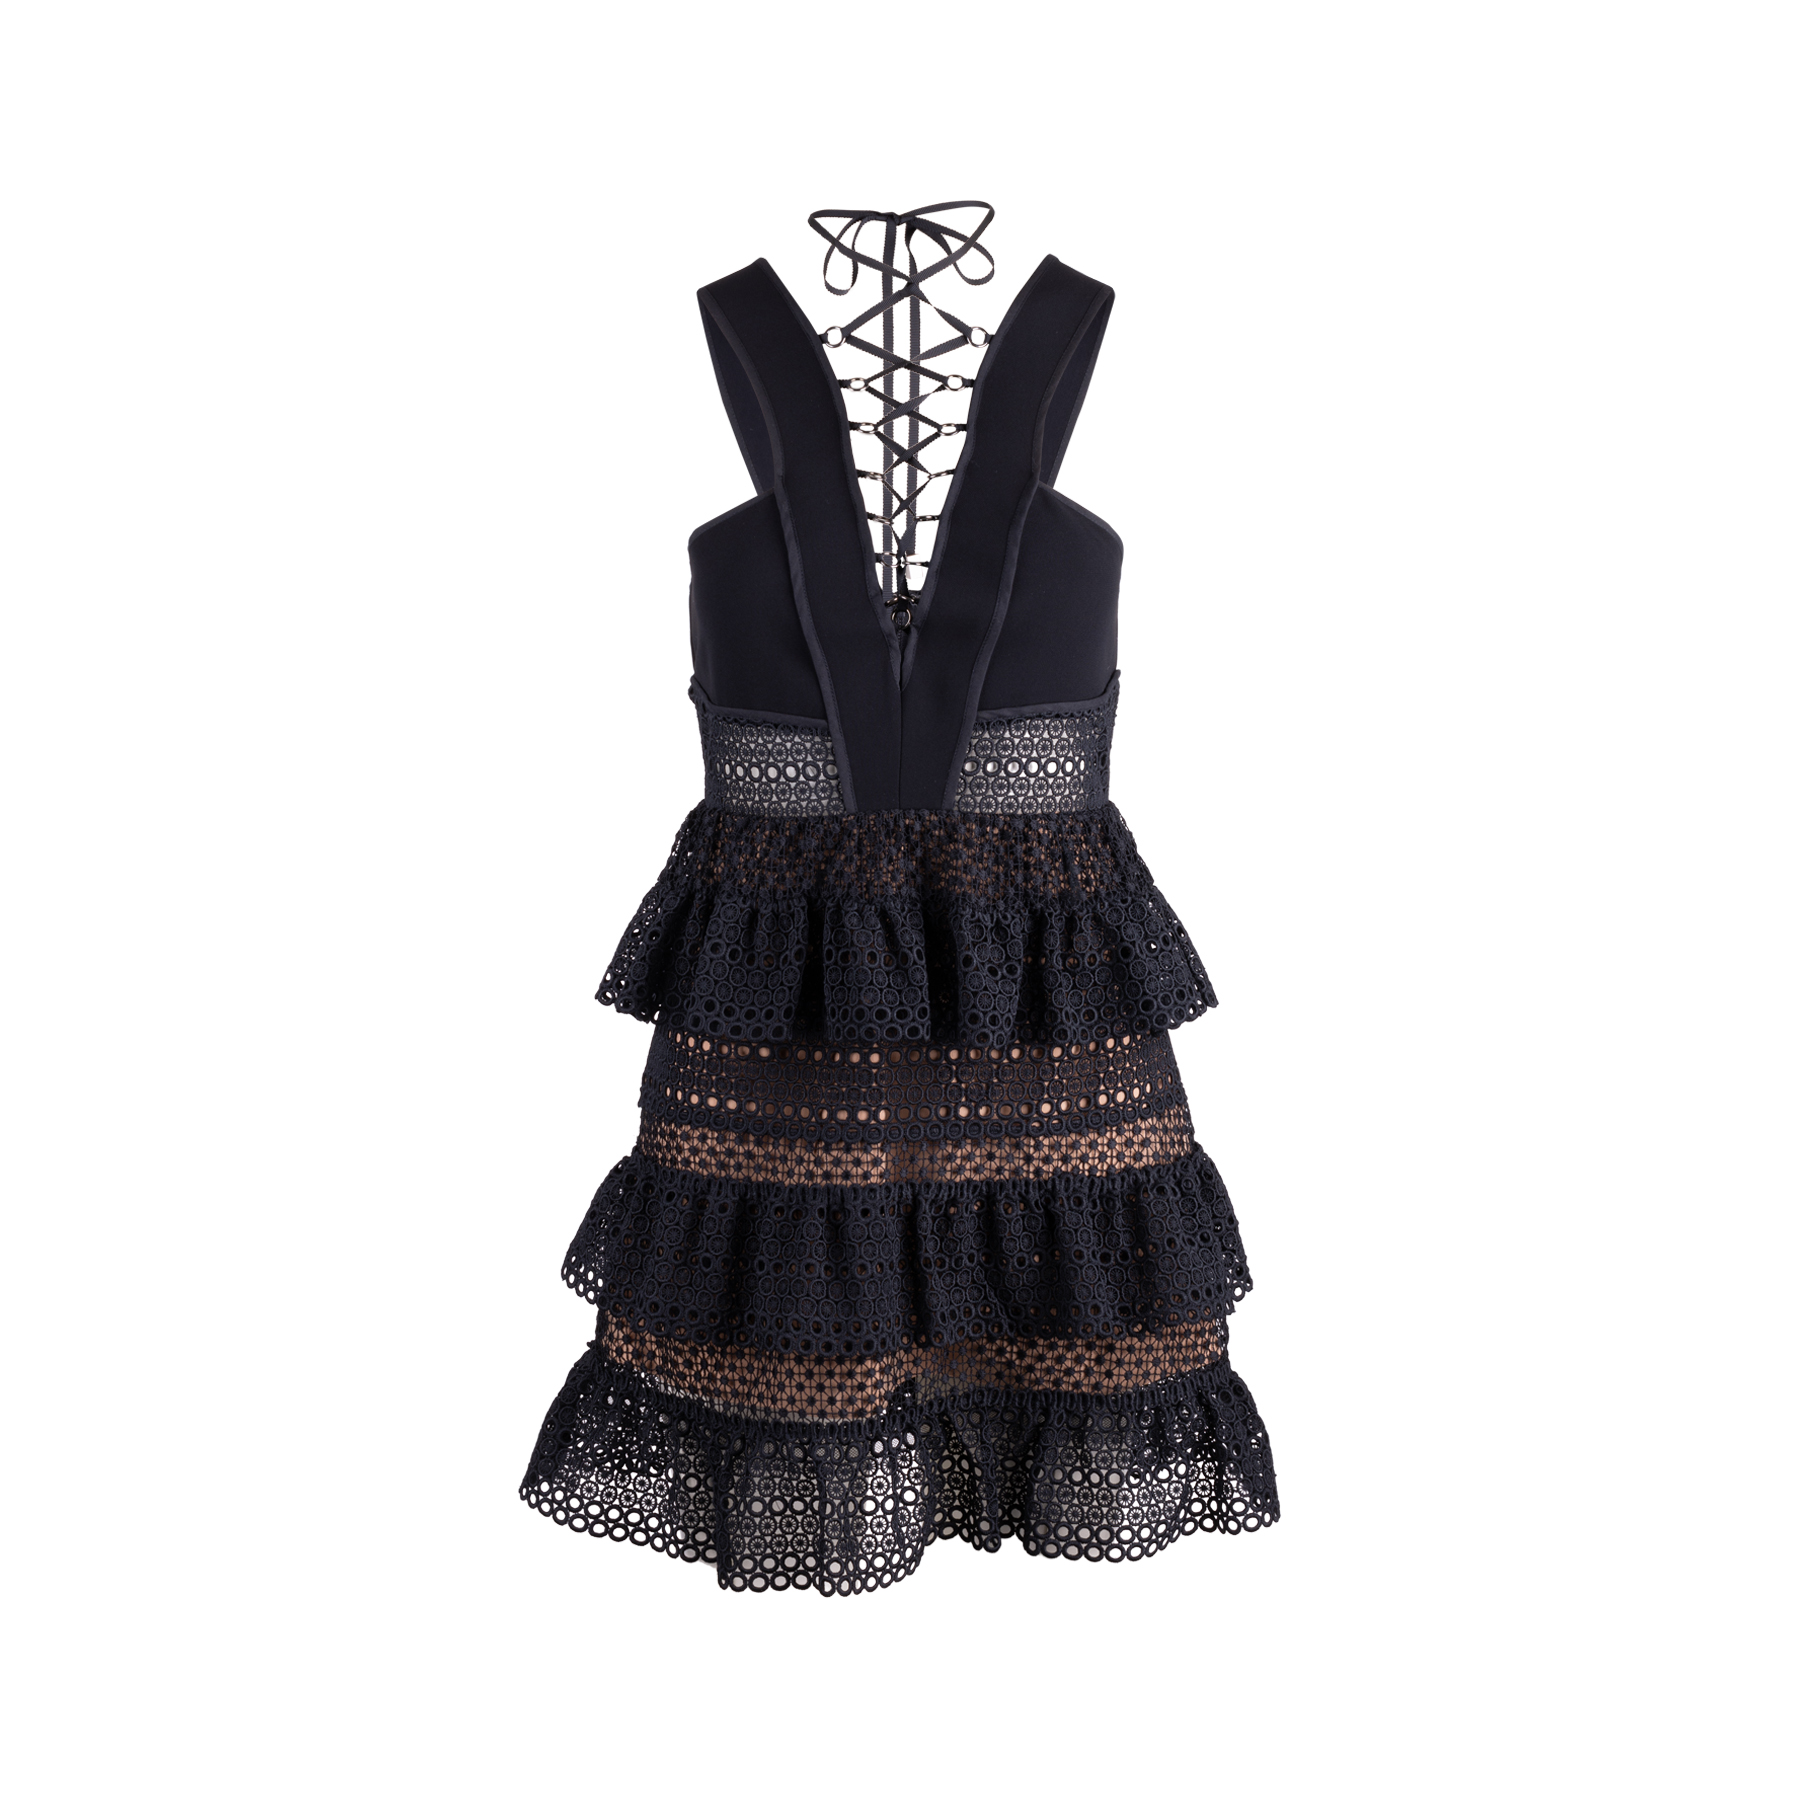 d702f64720bb2 Authentic Second Hand Self-Portrait Lace-Up Tiered Dress (PSS-148-00059) |  THE FIFTH COLLECTION